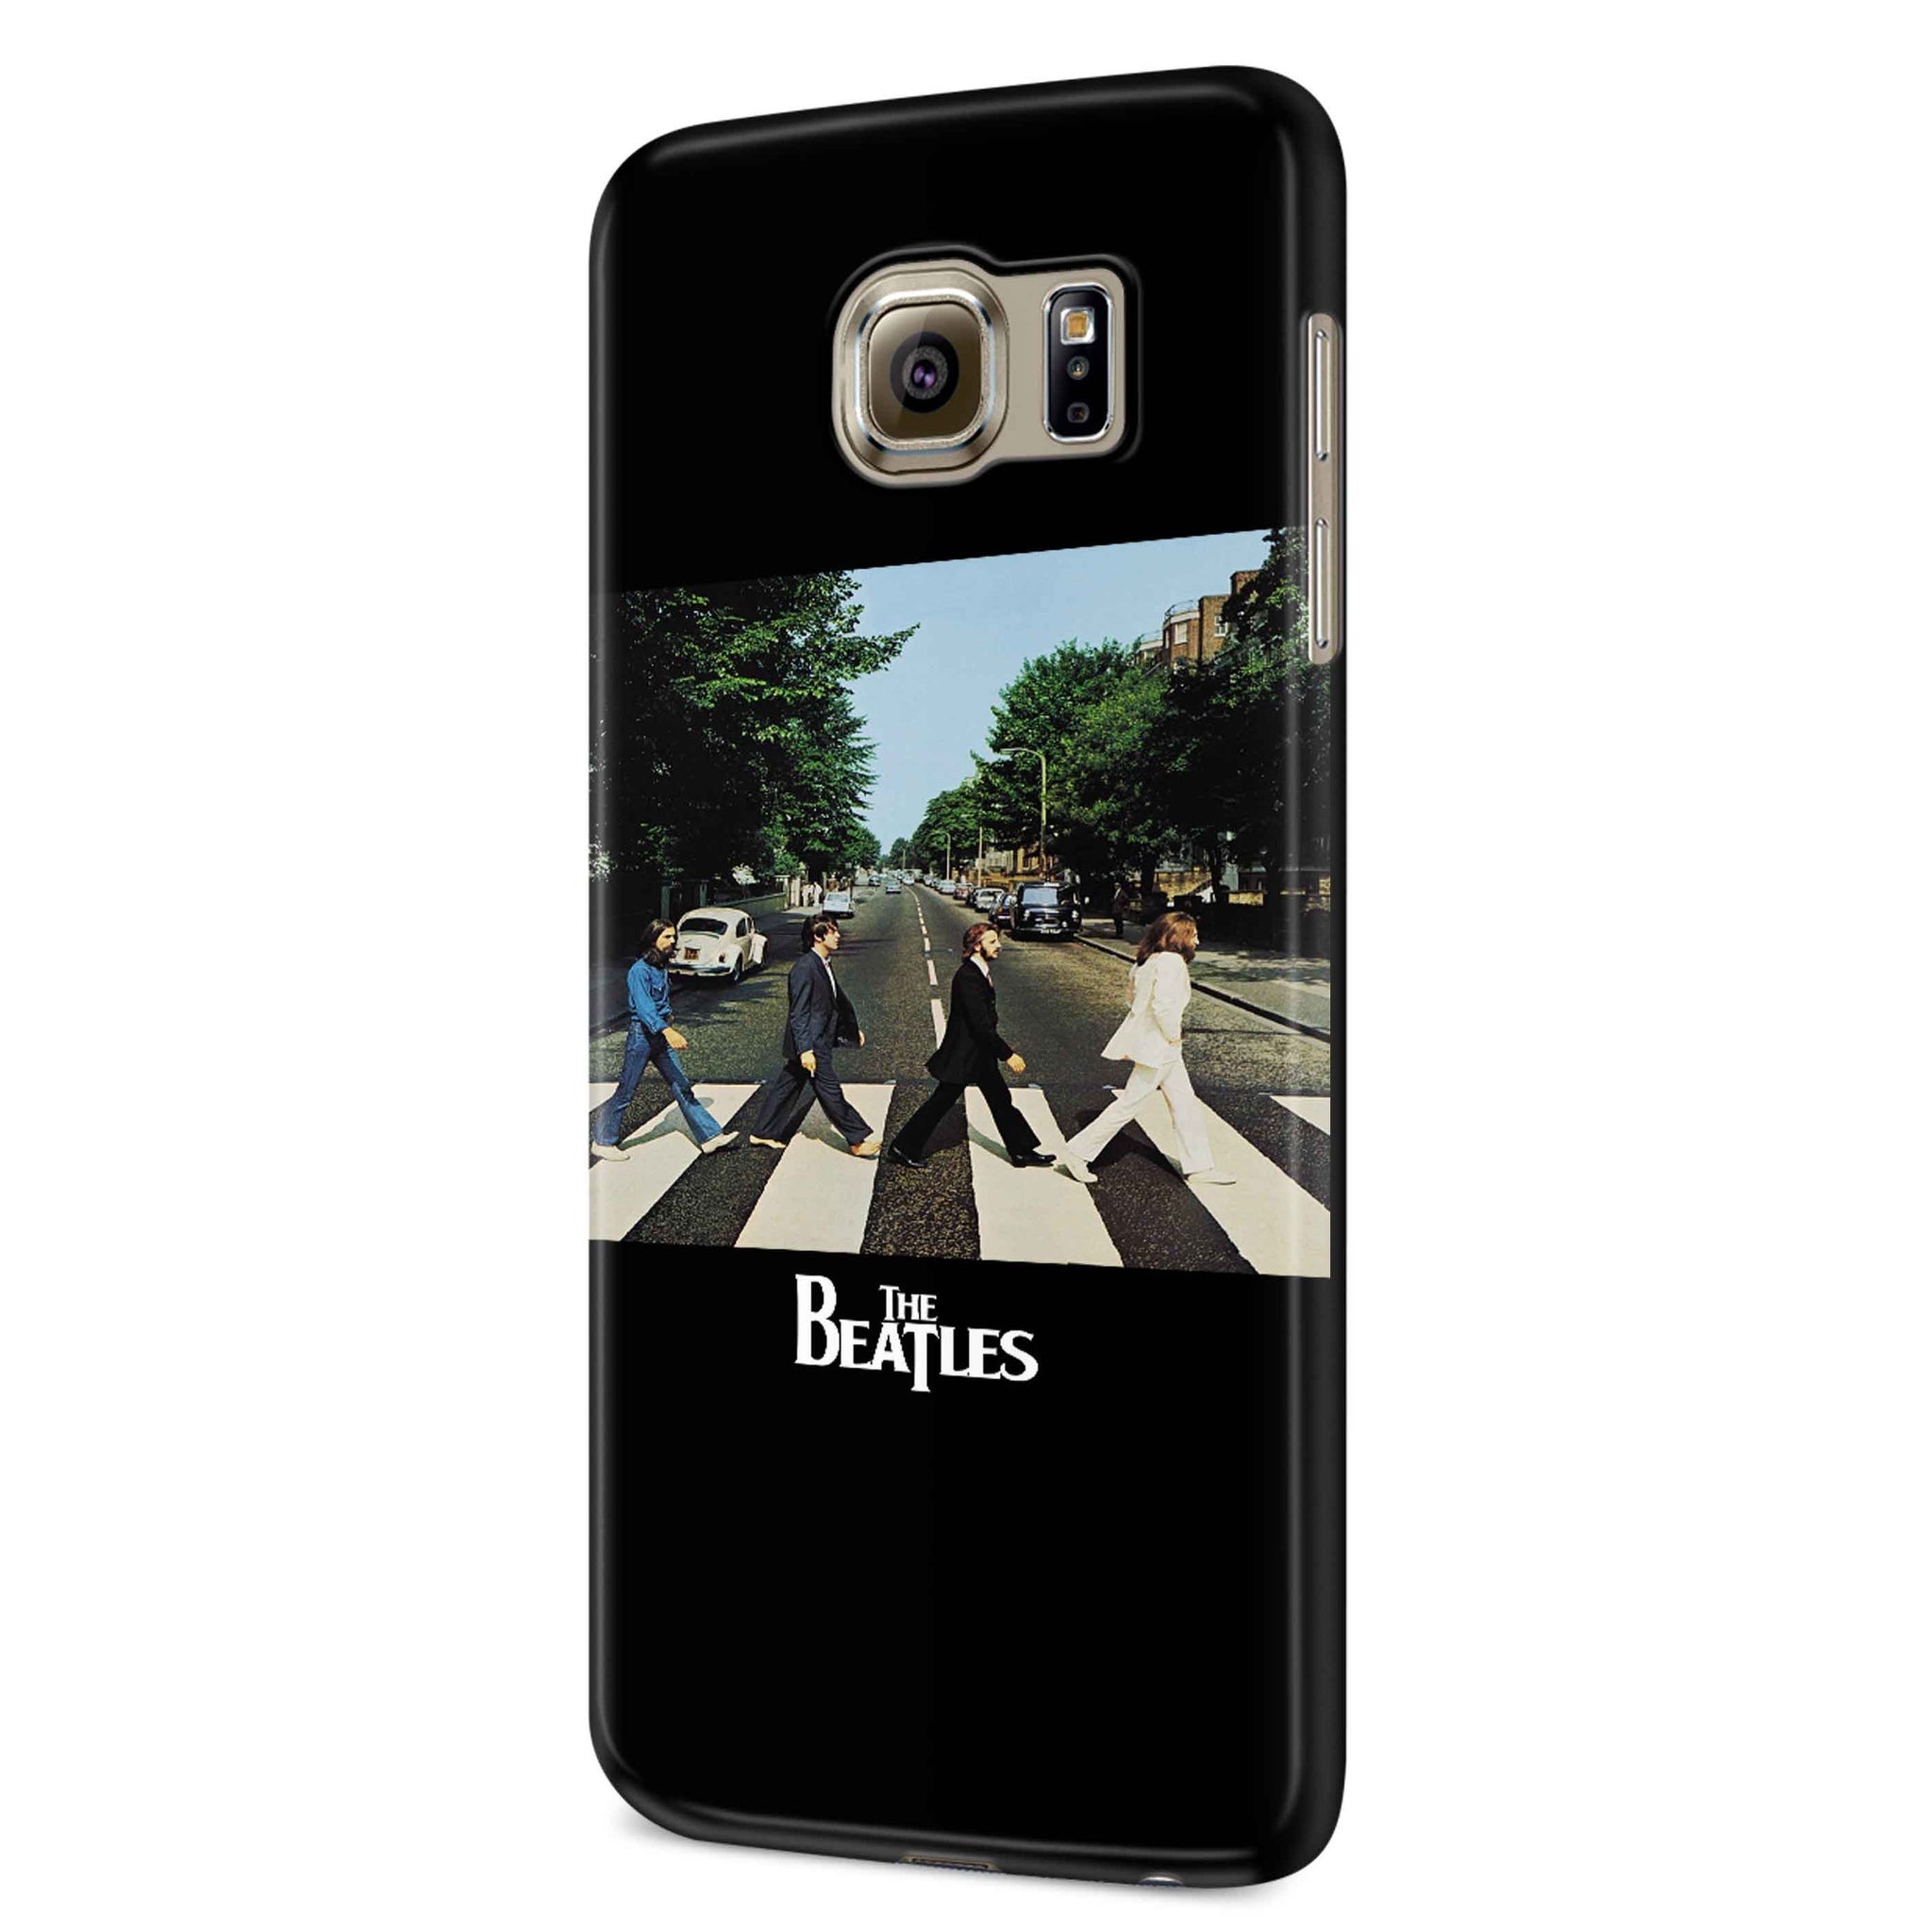 The Beatles Abbey Road Album Samsung Galaxy S6 S6 Edge Plus/ S7 S7 Edge / S8 S8 Plus / S9 S9 plus 3D Case